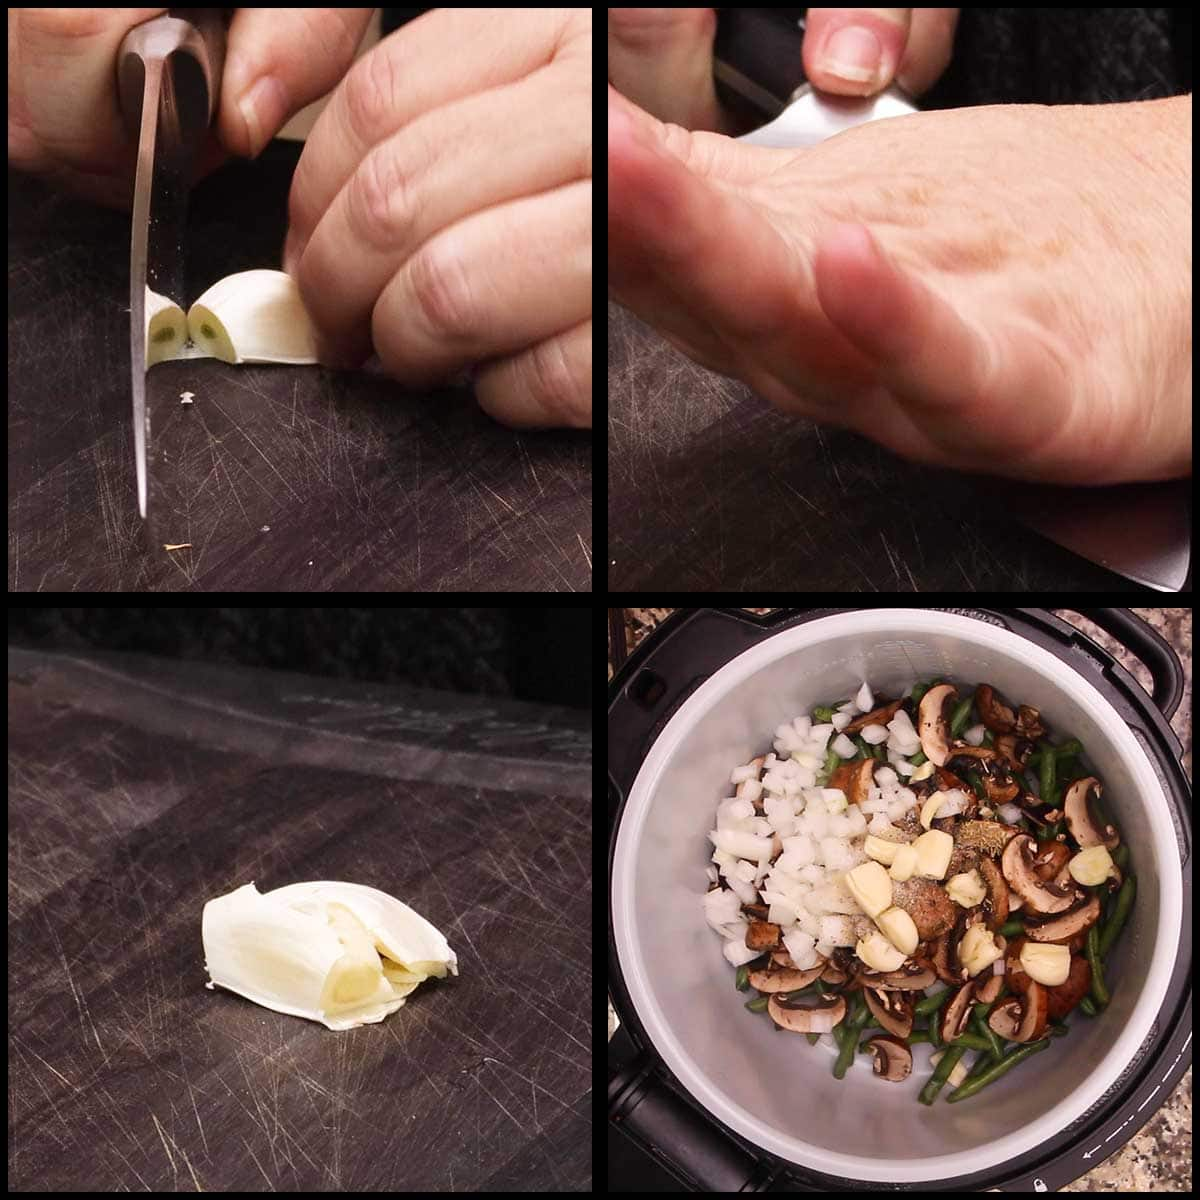 smashing garlic and adding to the inner pot